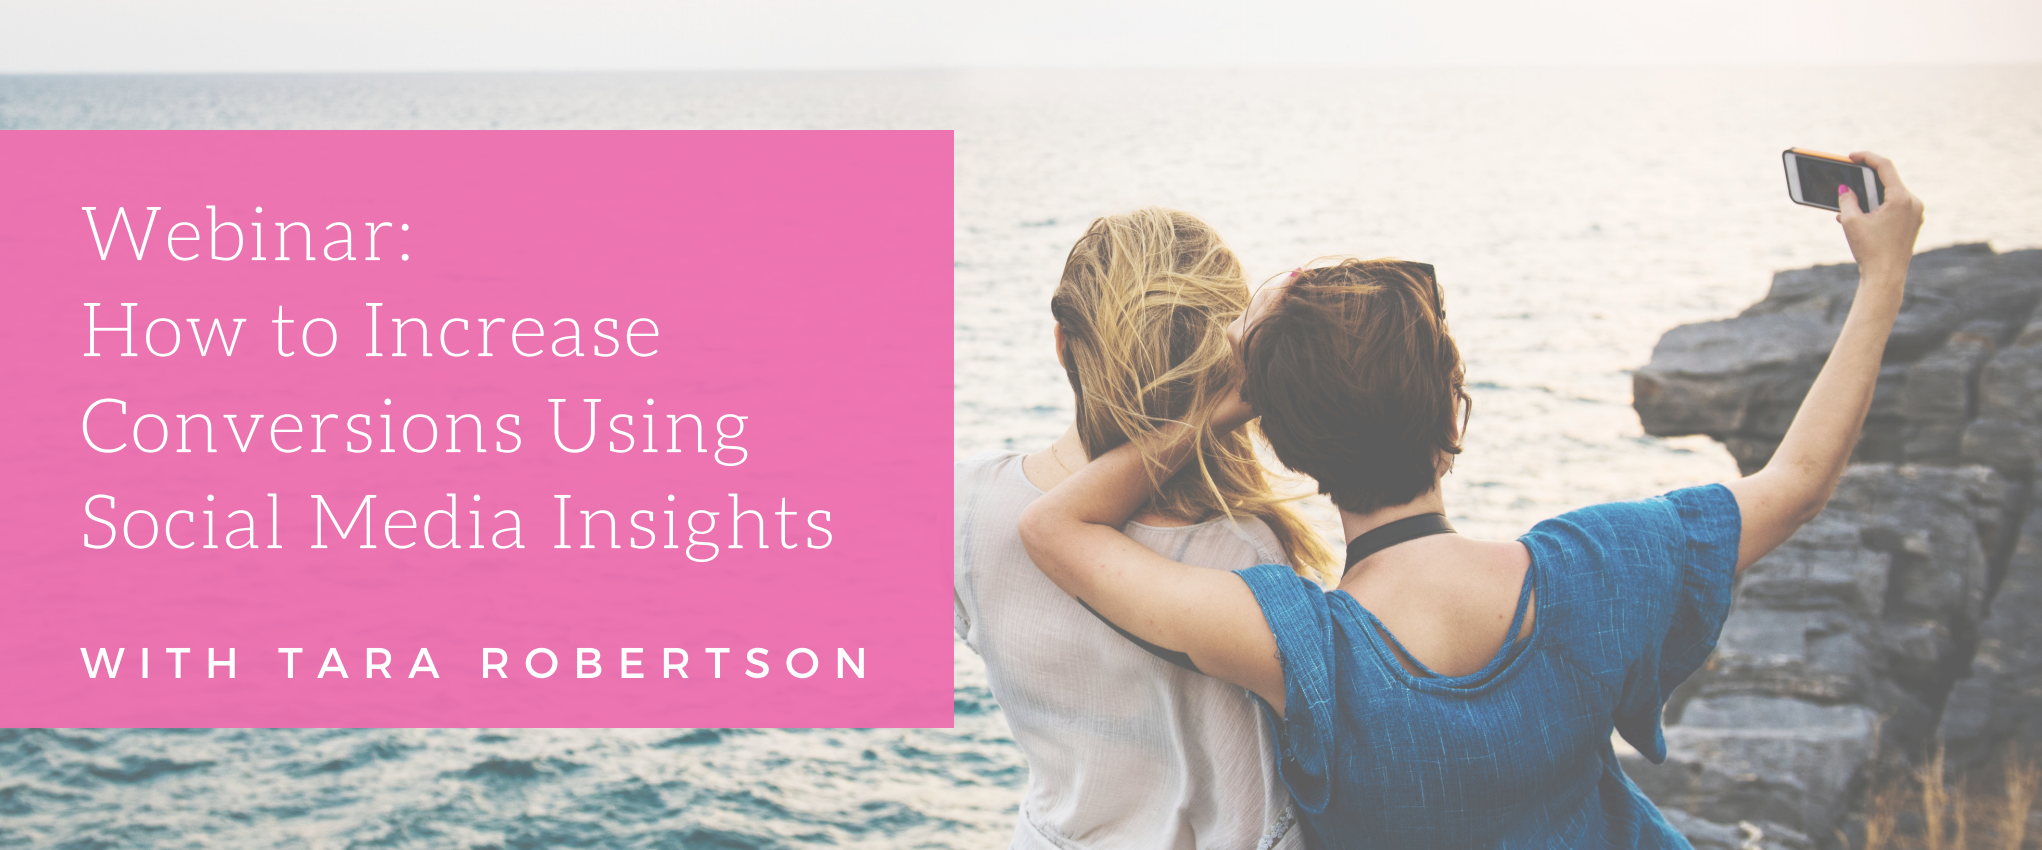 Social Listening: How to Increase Conversions Using Social Media Insights